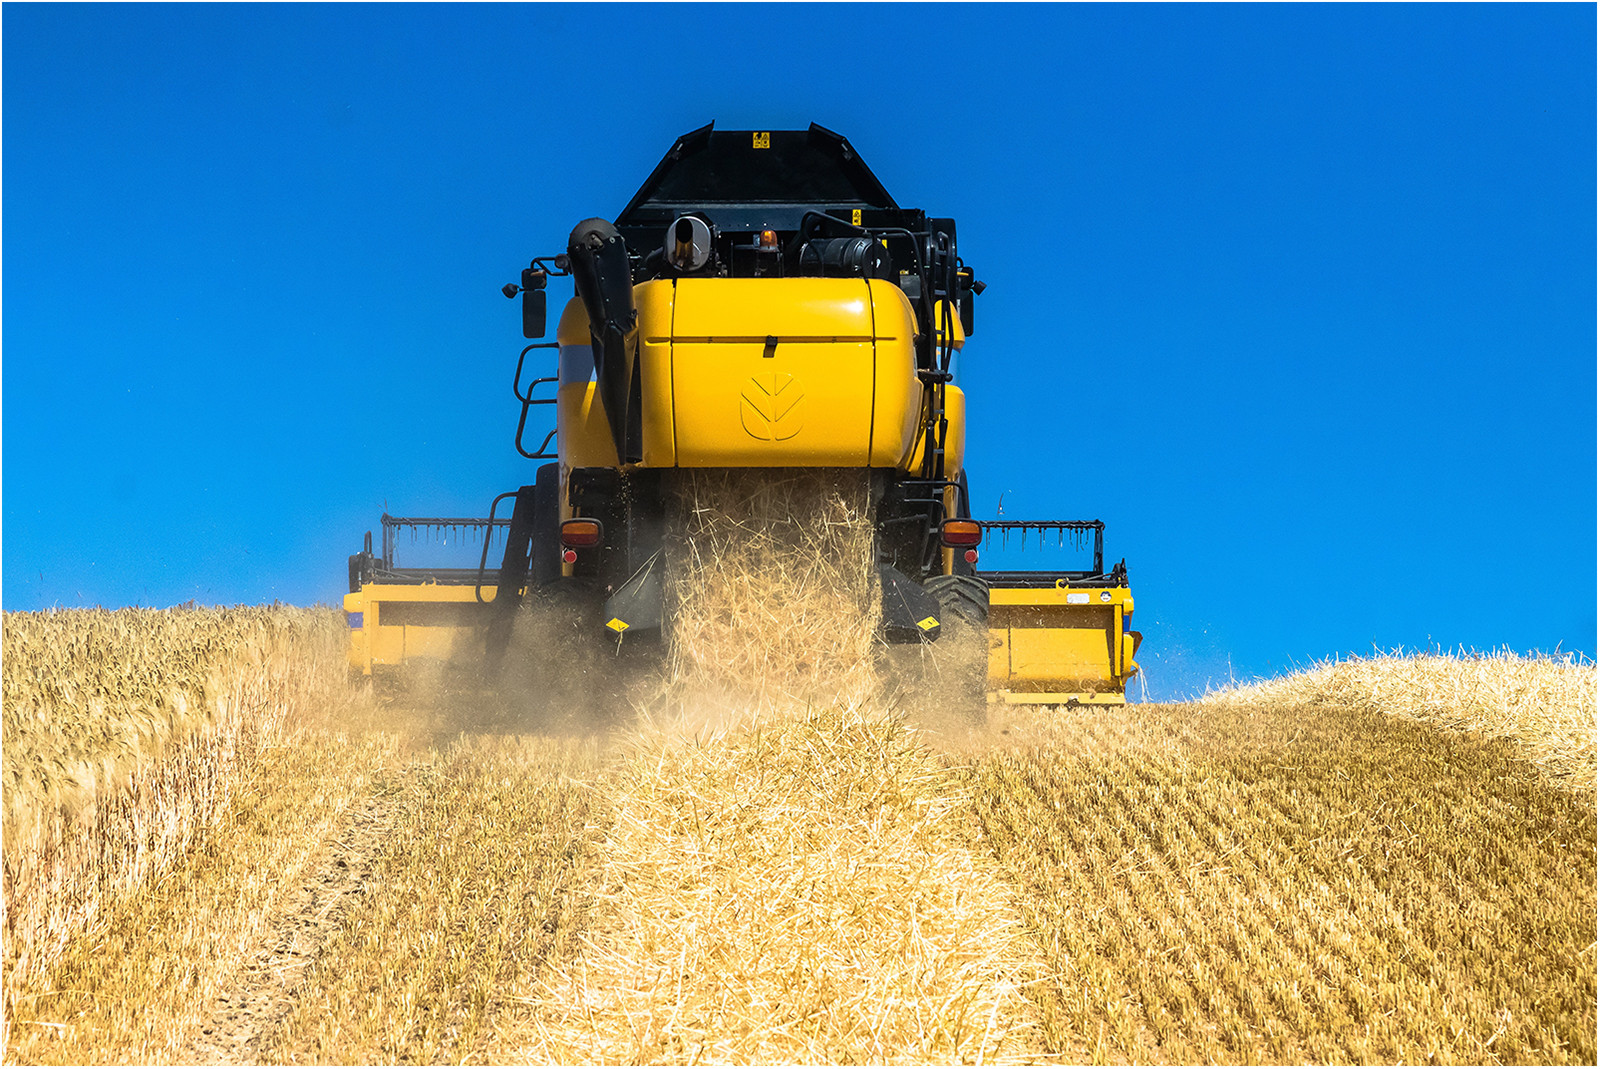 PDI - The Combine Harvester - The Wurzels by Michael Smyth (11 marks)